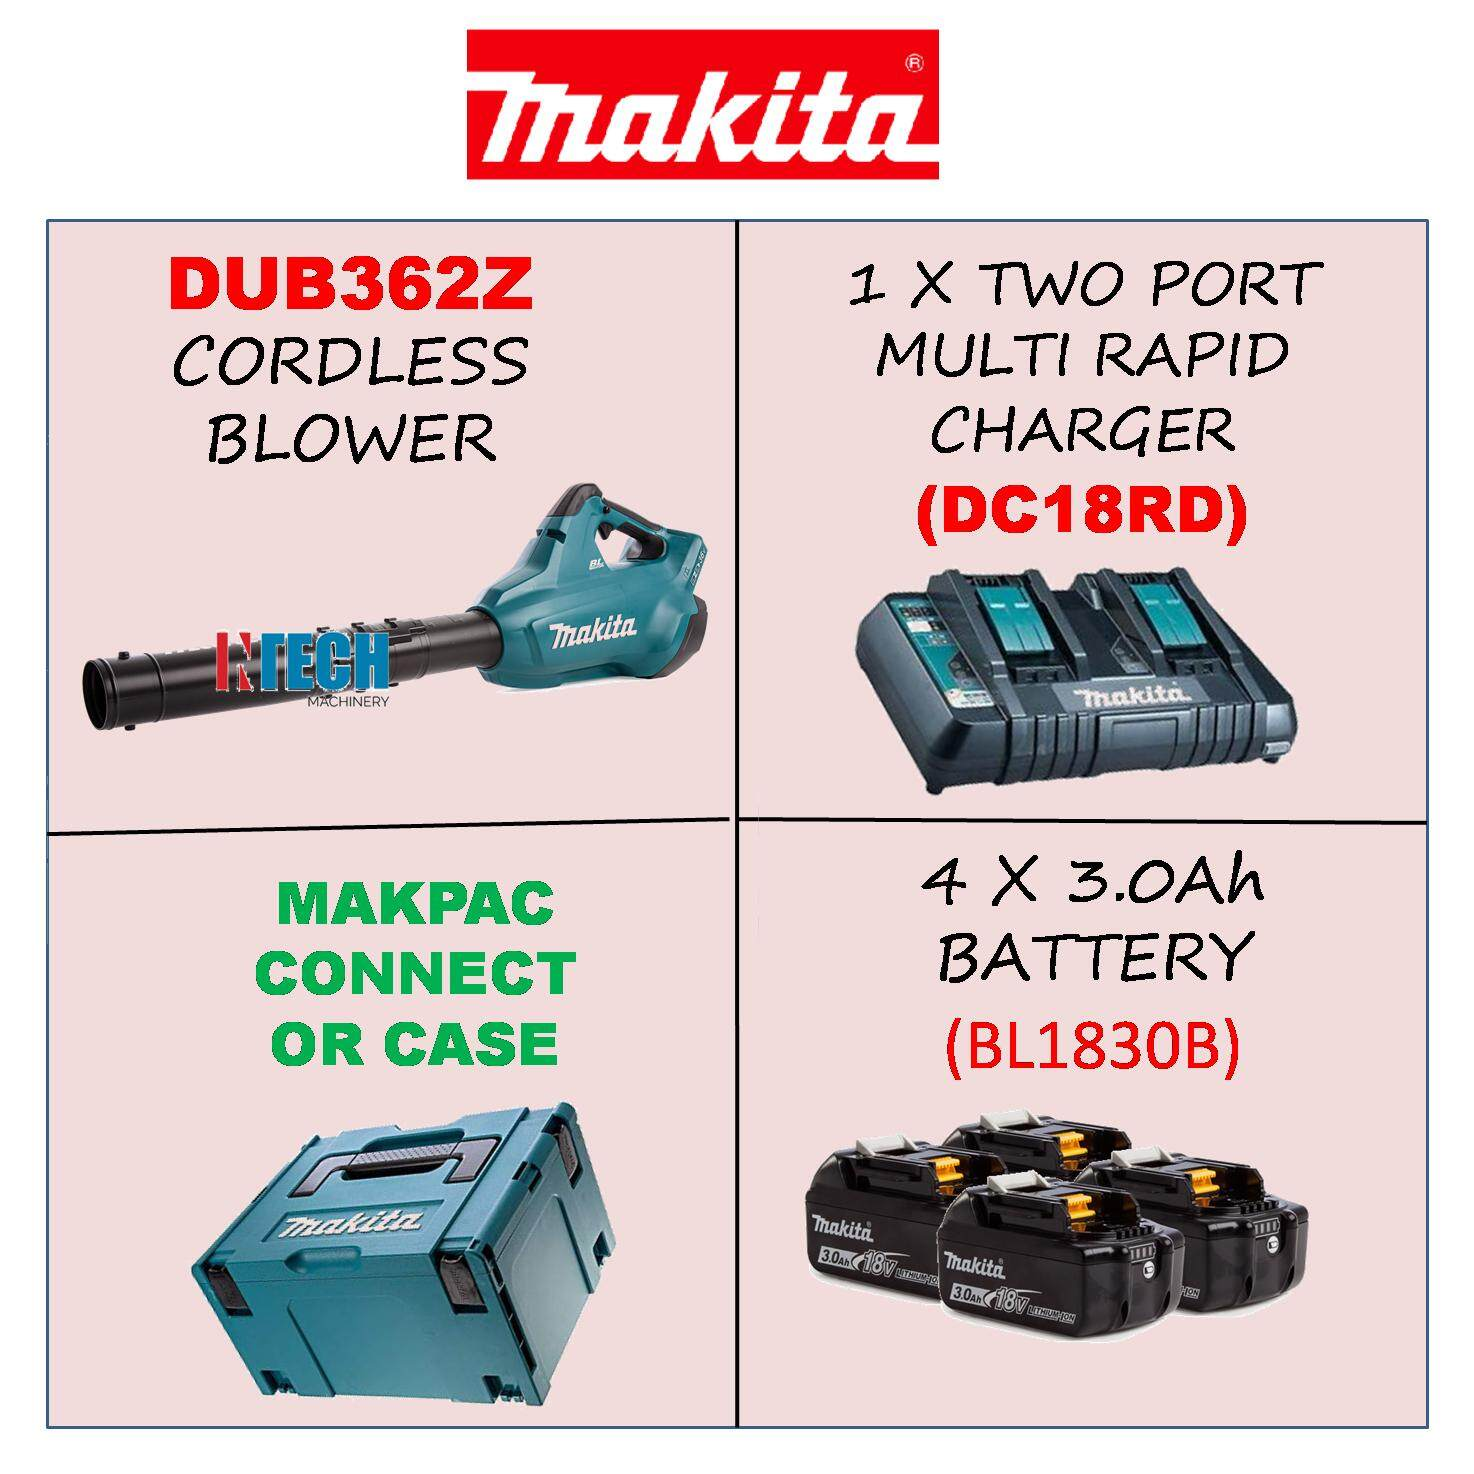 MAKITA DUB362Z CORDLESS BLOWER C/W 4 X 3.0Ah BATTERY, 1 X TWO PORT MULTI RAPID CHARGER, 1 X MAKPAC CONNECTOR CASE